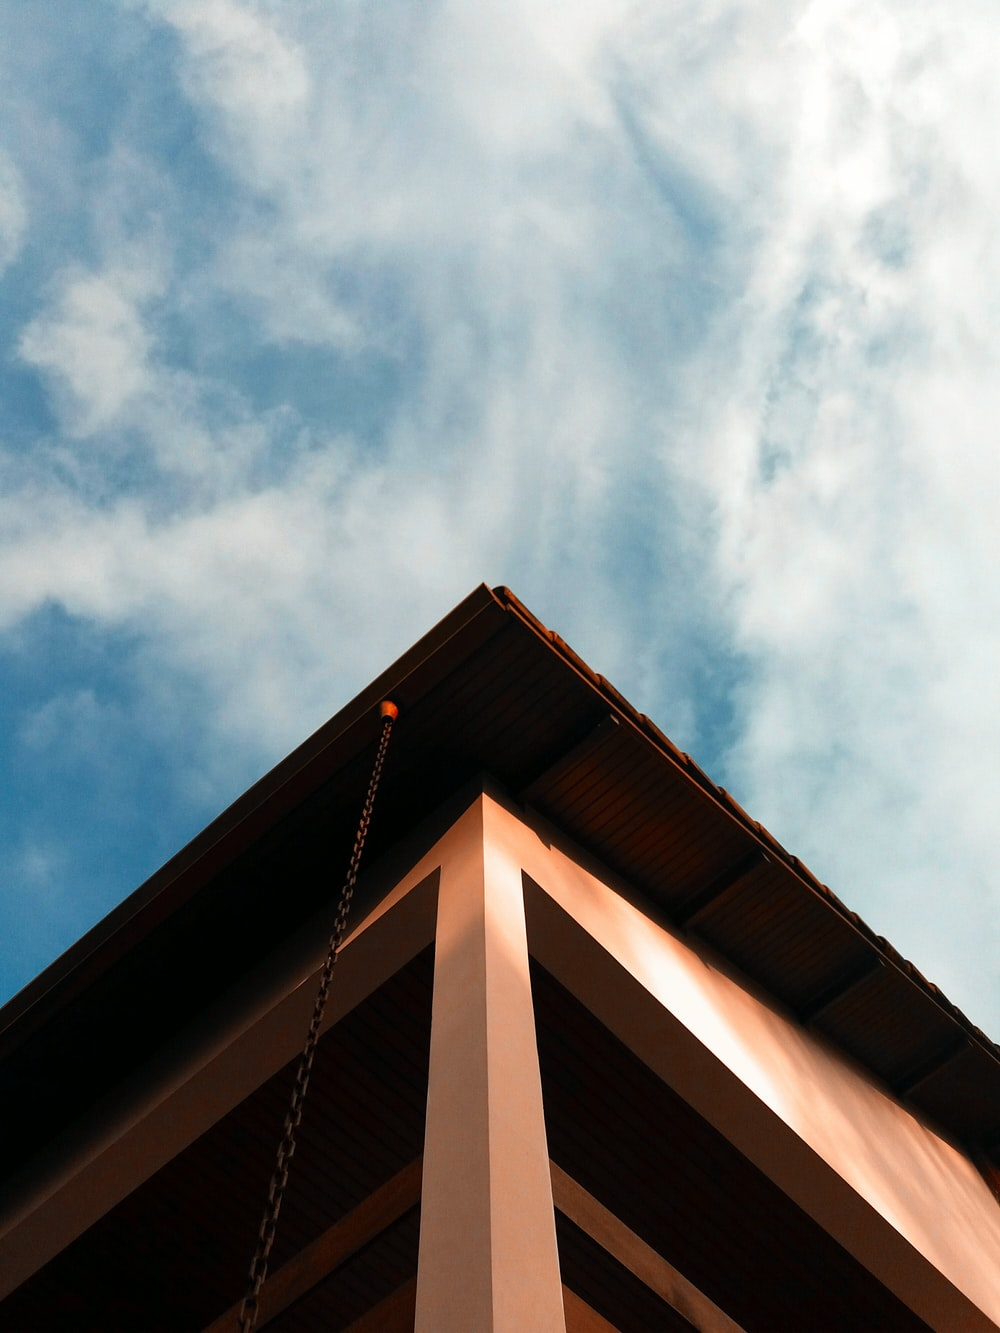 brown wooden roof under blue sky